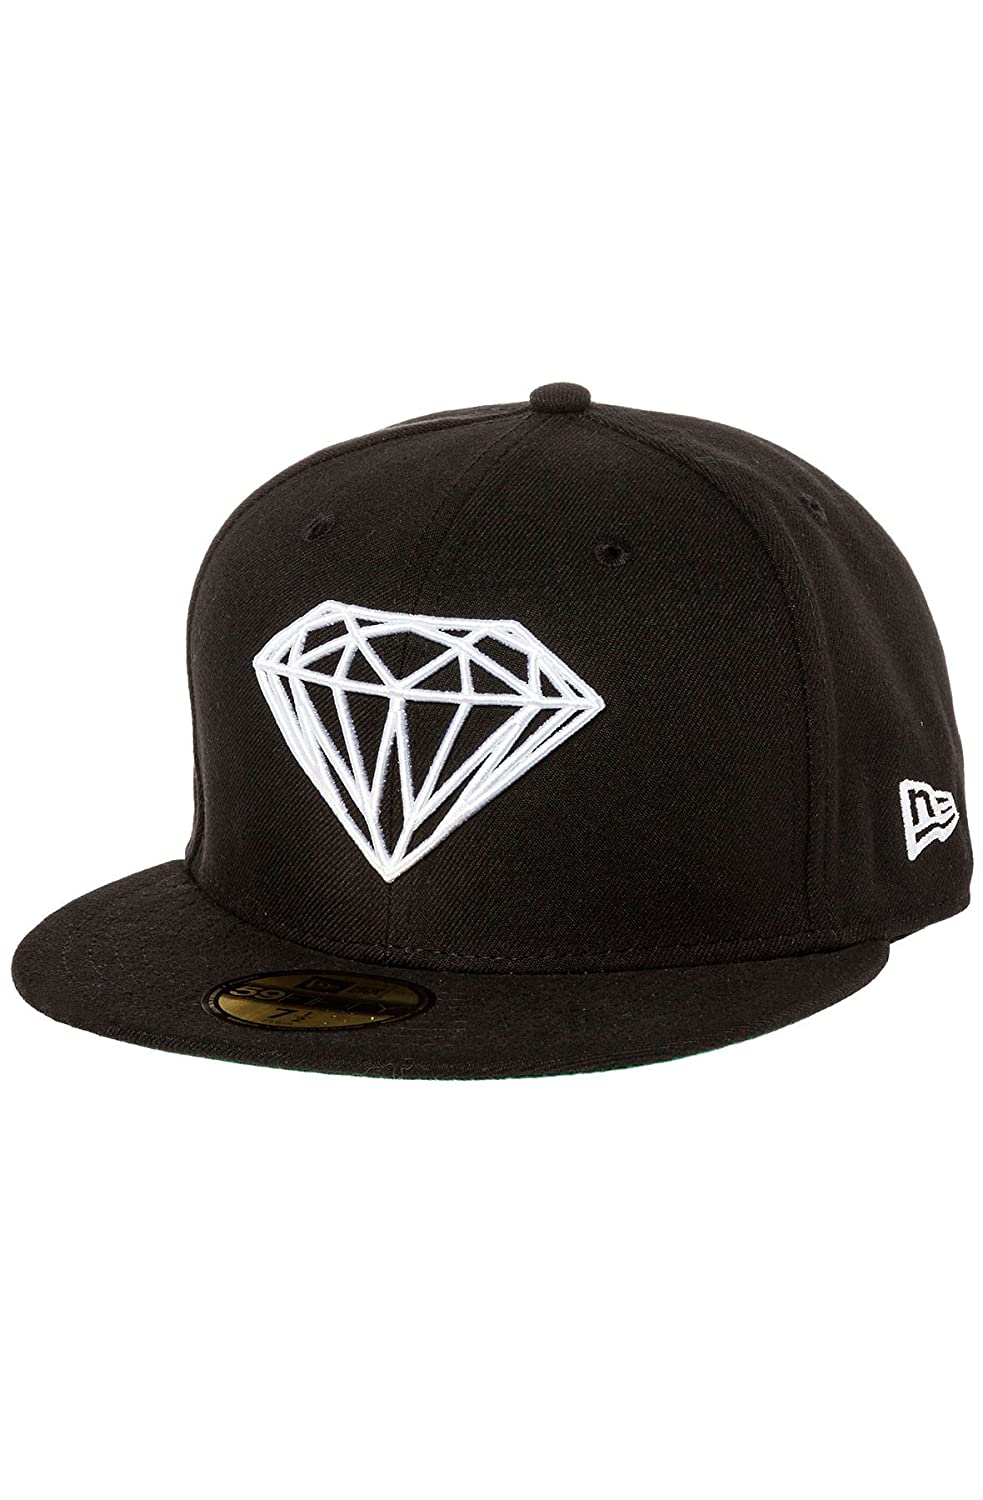 386665f33c6 Amazon.com  Diamond Supply Co. Men s Brilliant Fitted Hat 7 3 8 Black   Clothing